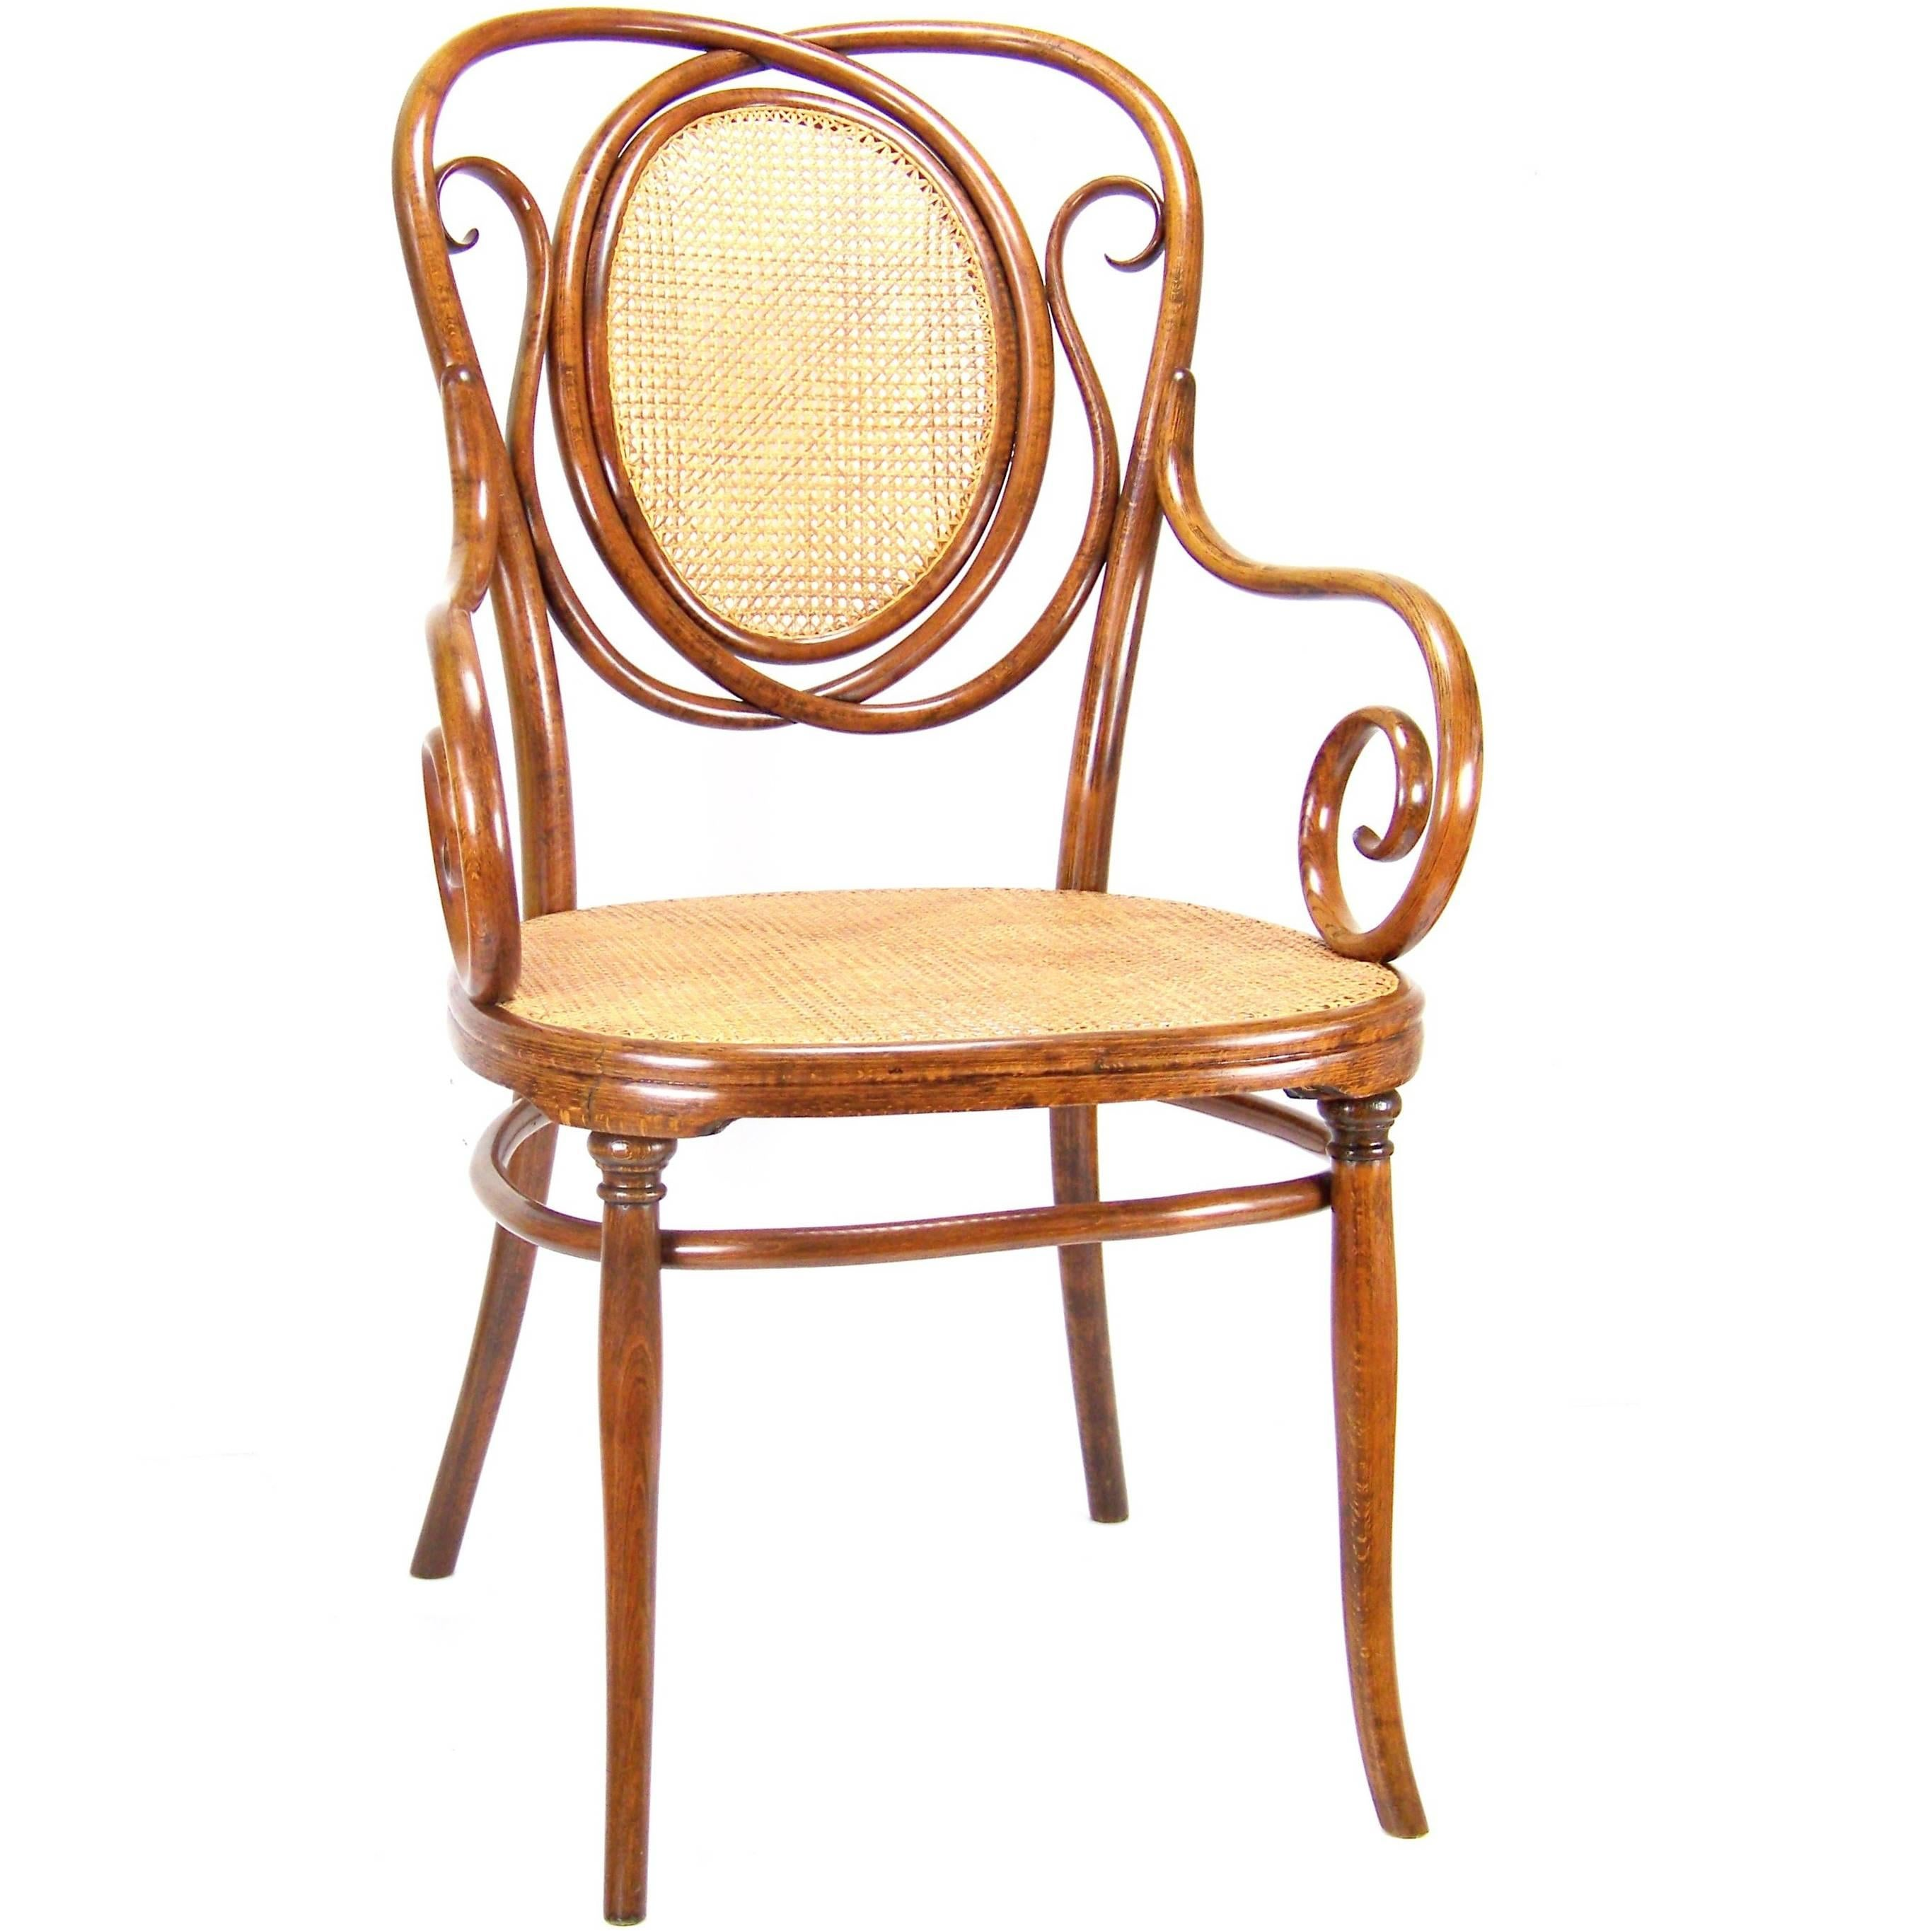 Rare Armchair Thonet Nr22 Circa 1887 1910 For Sale At